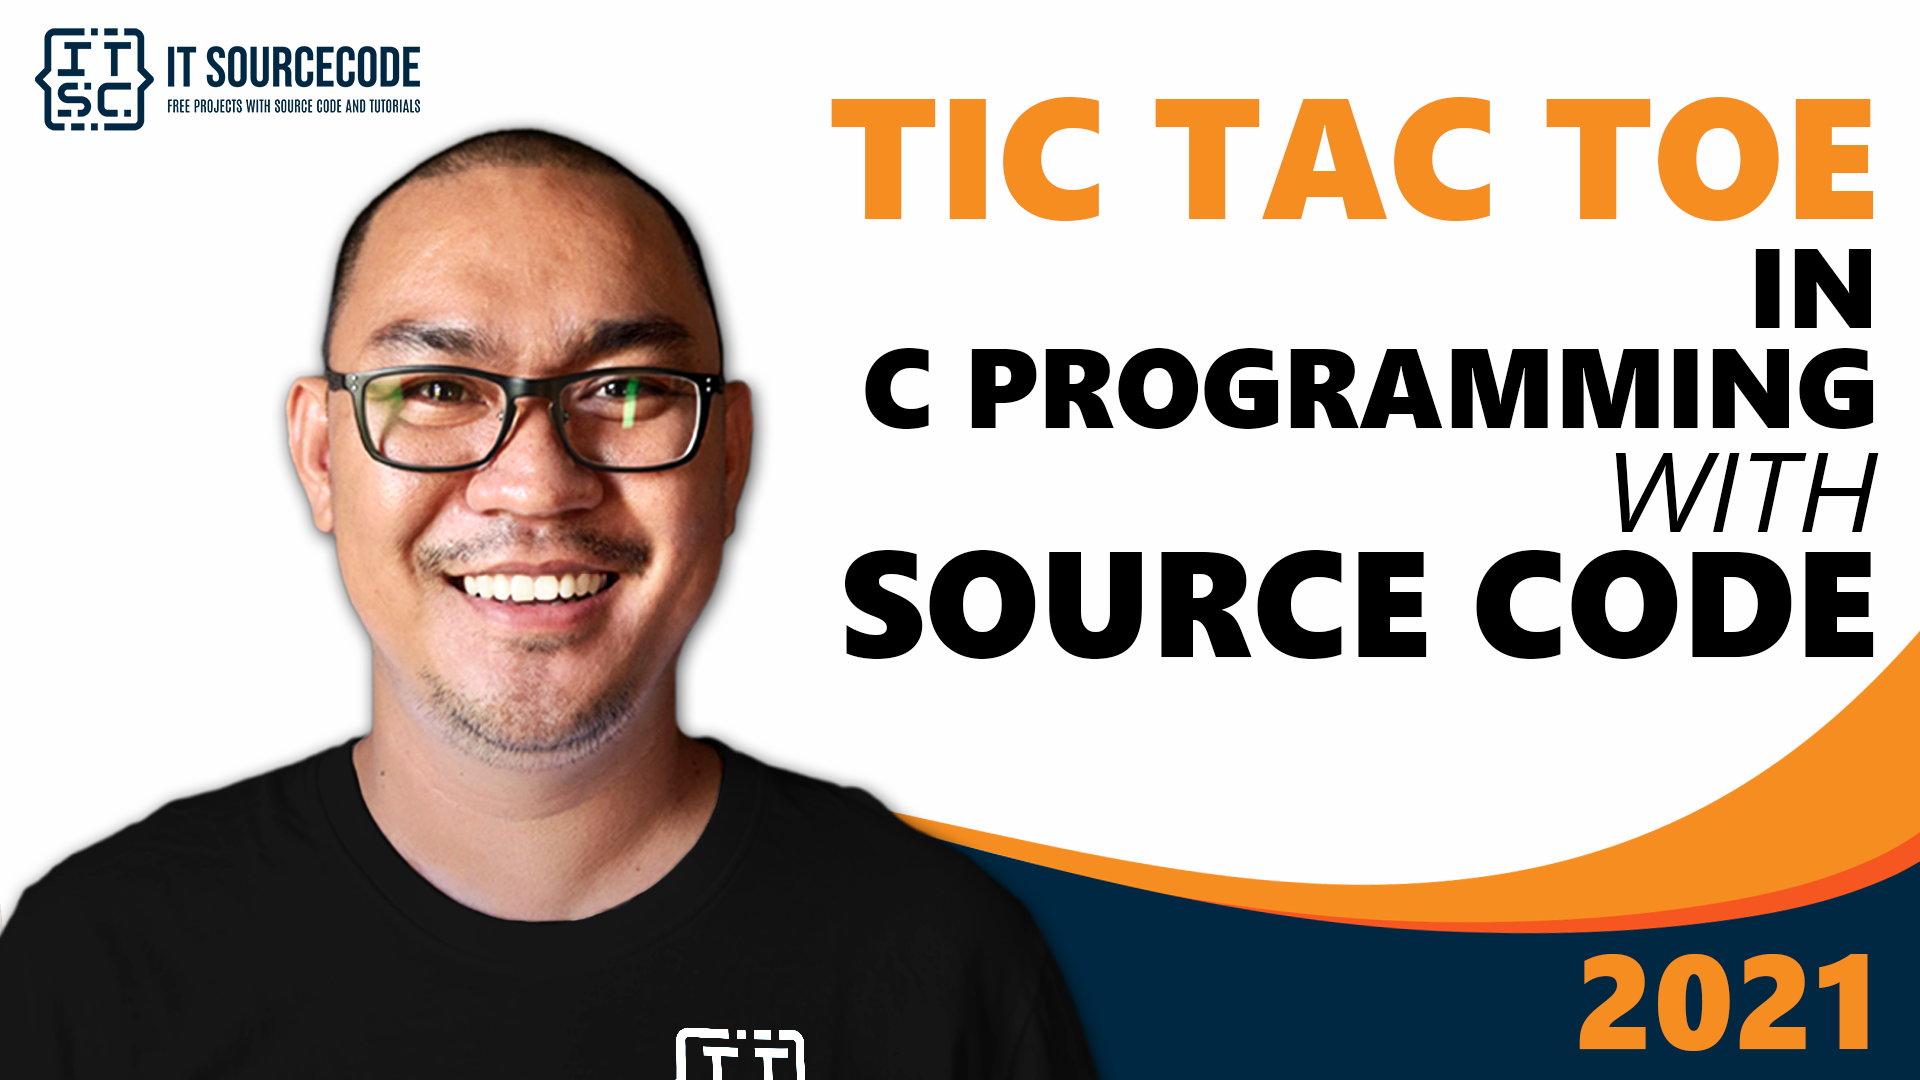 Tic Tac Toe In C Programming With Source Code